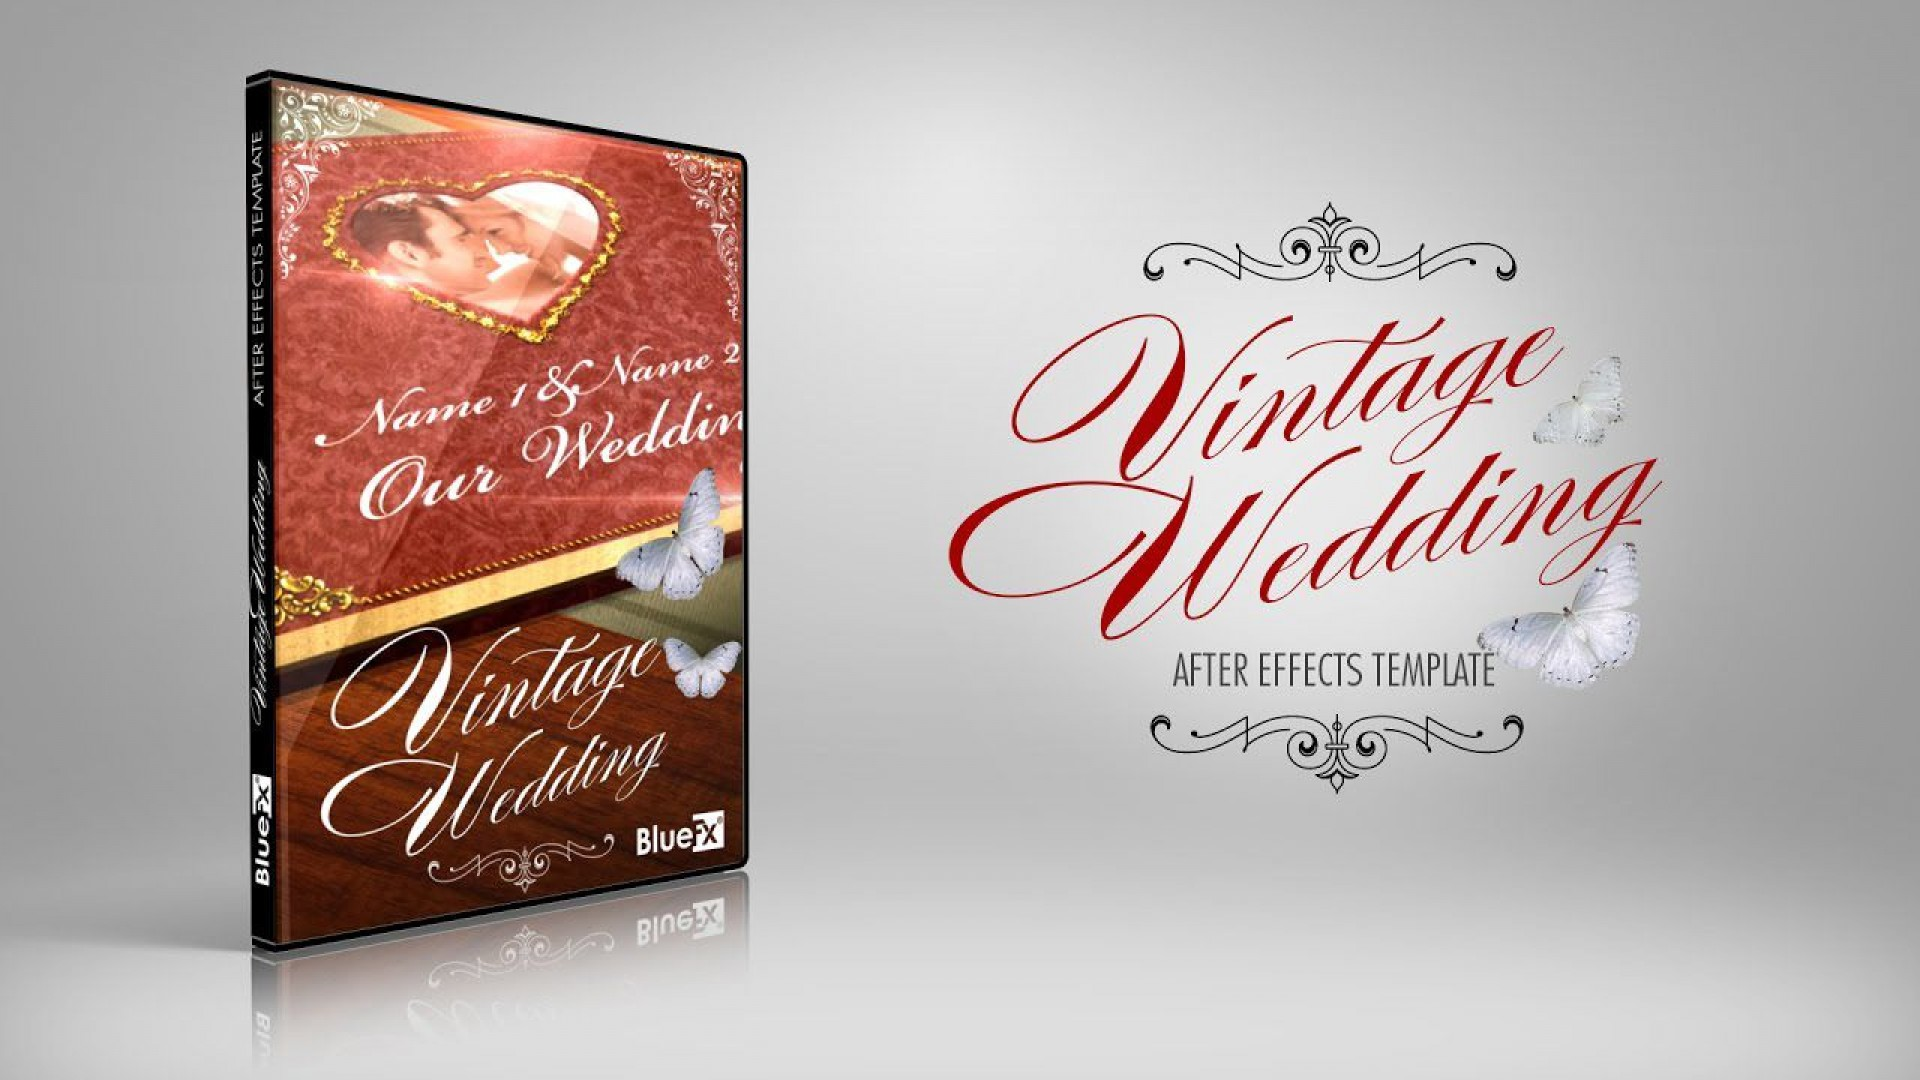 005 Beautiful After Effect Wedding Template Highest Quality  Templates Free Download Cc Invitation1920